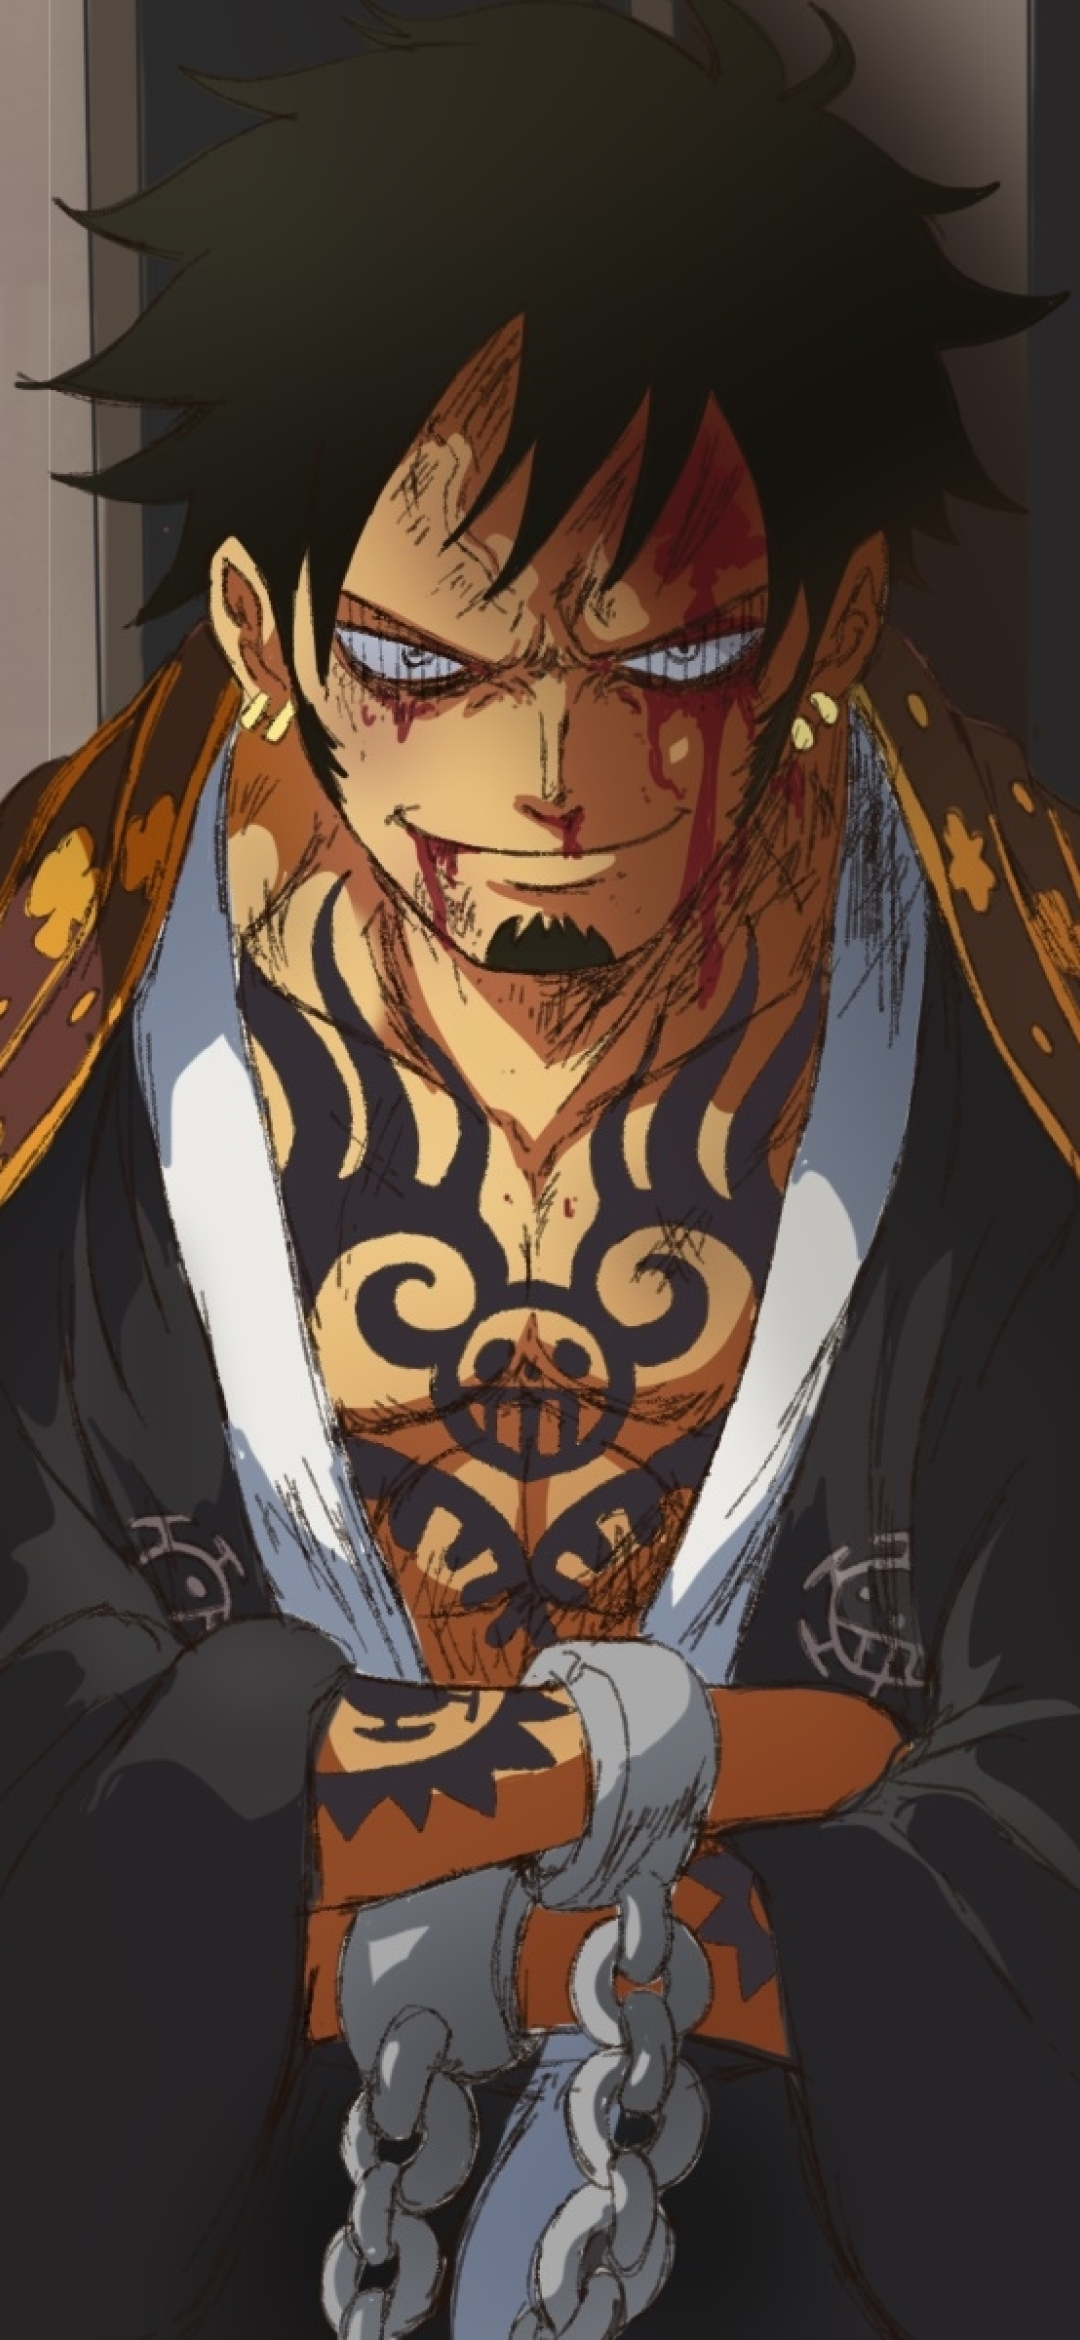 1080x2340 Trafalgar Law In One Piece 1080x2340 Resolution Wallpaper Hd Anime 4k Wallpapers Images Photos And Background Wallpapers Den